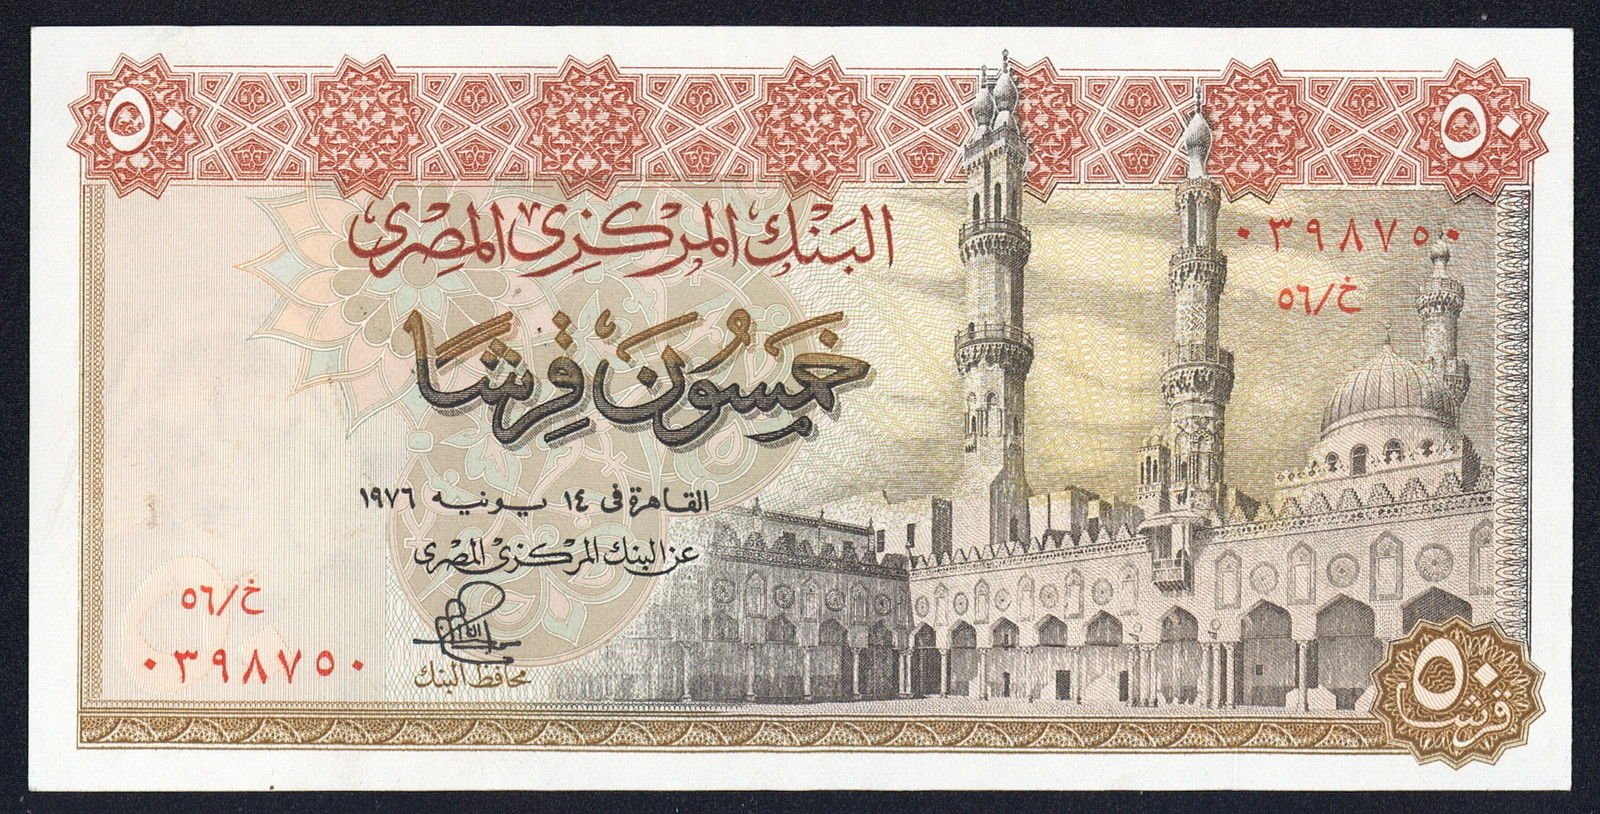 Egypt 50 piastres banknote 1970 ramesses iiworld banknotes egypt 50 piastres banknote 1970 ramesses ii biocorpaavc Images